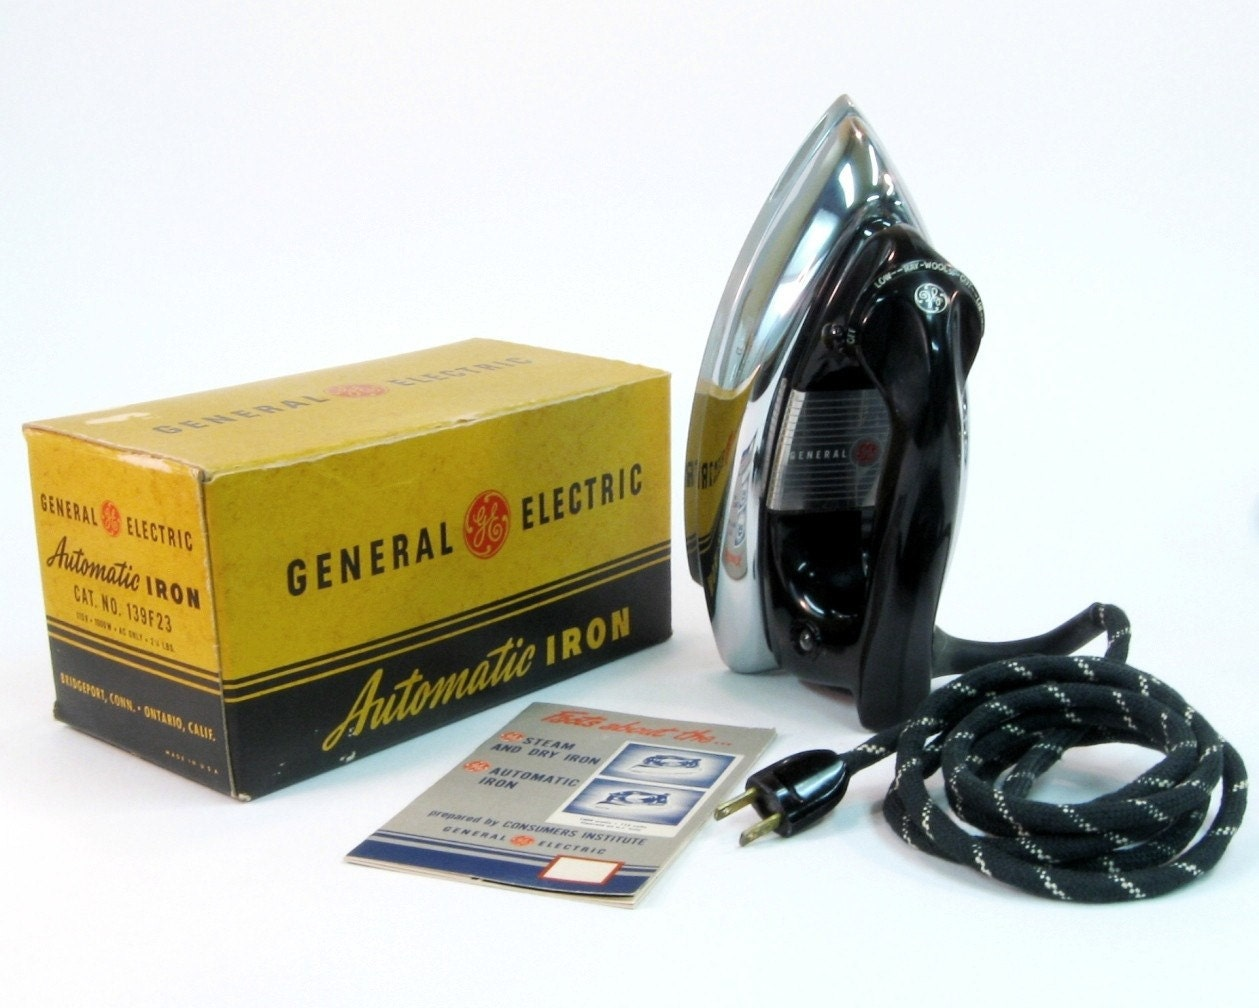 Vintage 1950s Ge Automatic Iron With Original Box And